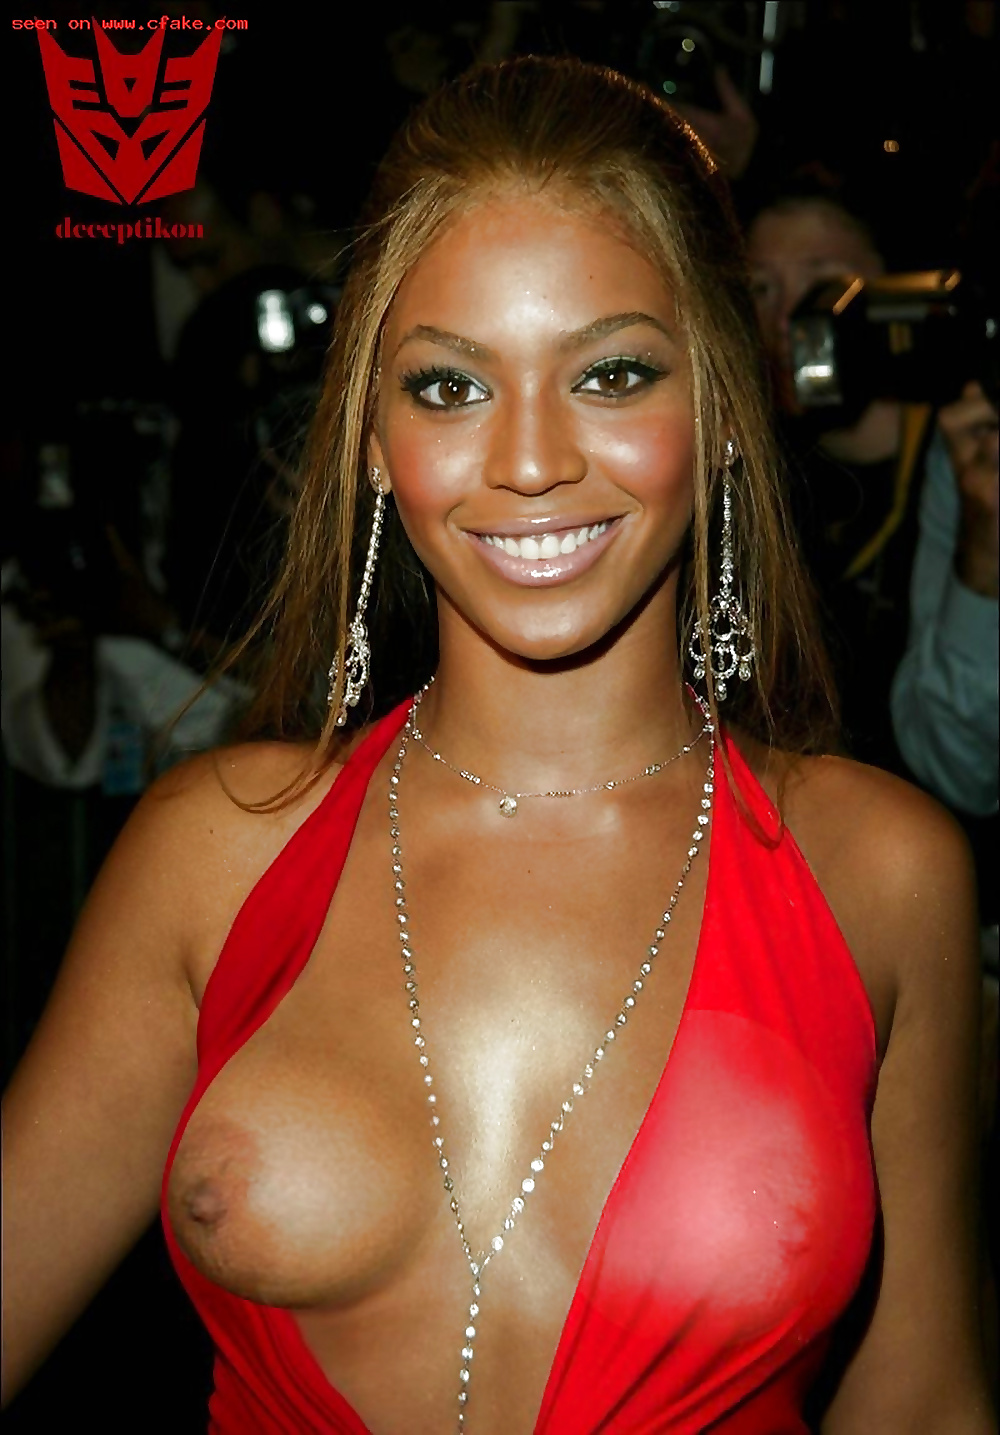 nude-boobs-of-beyonce